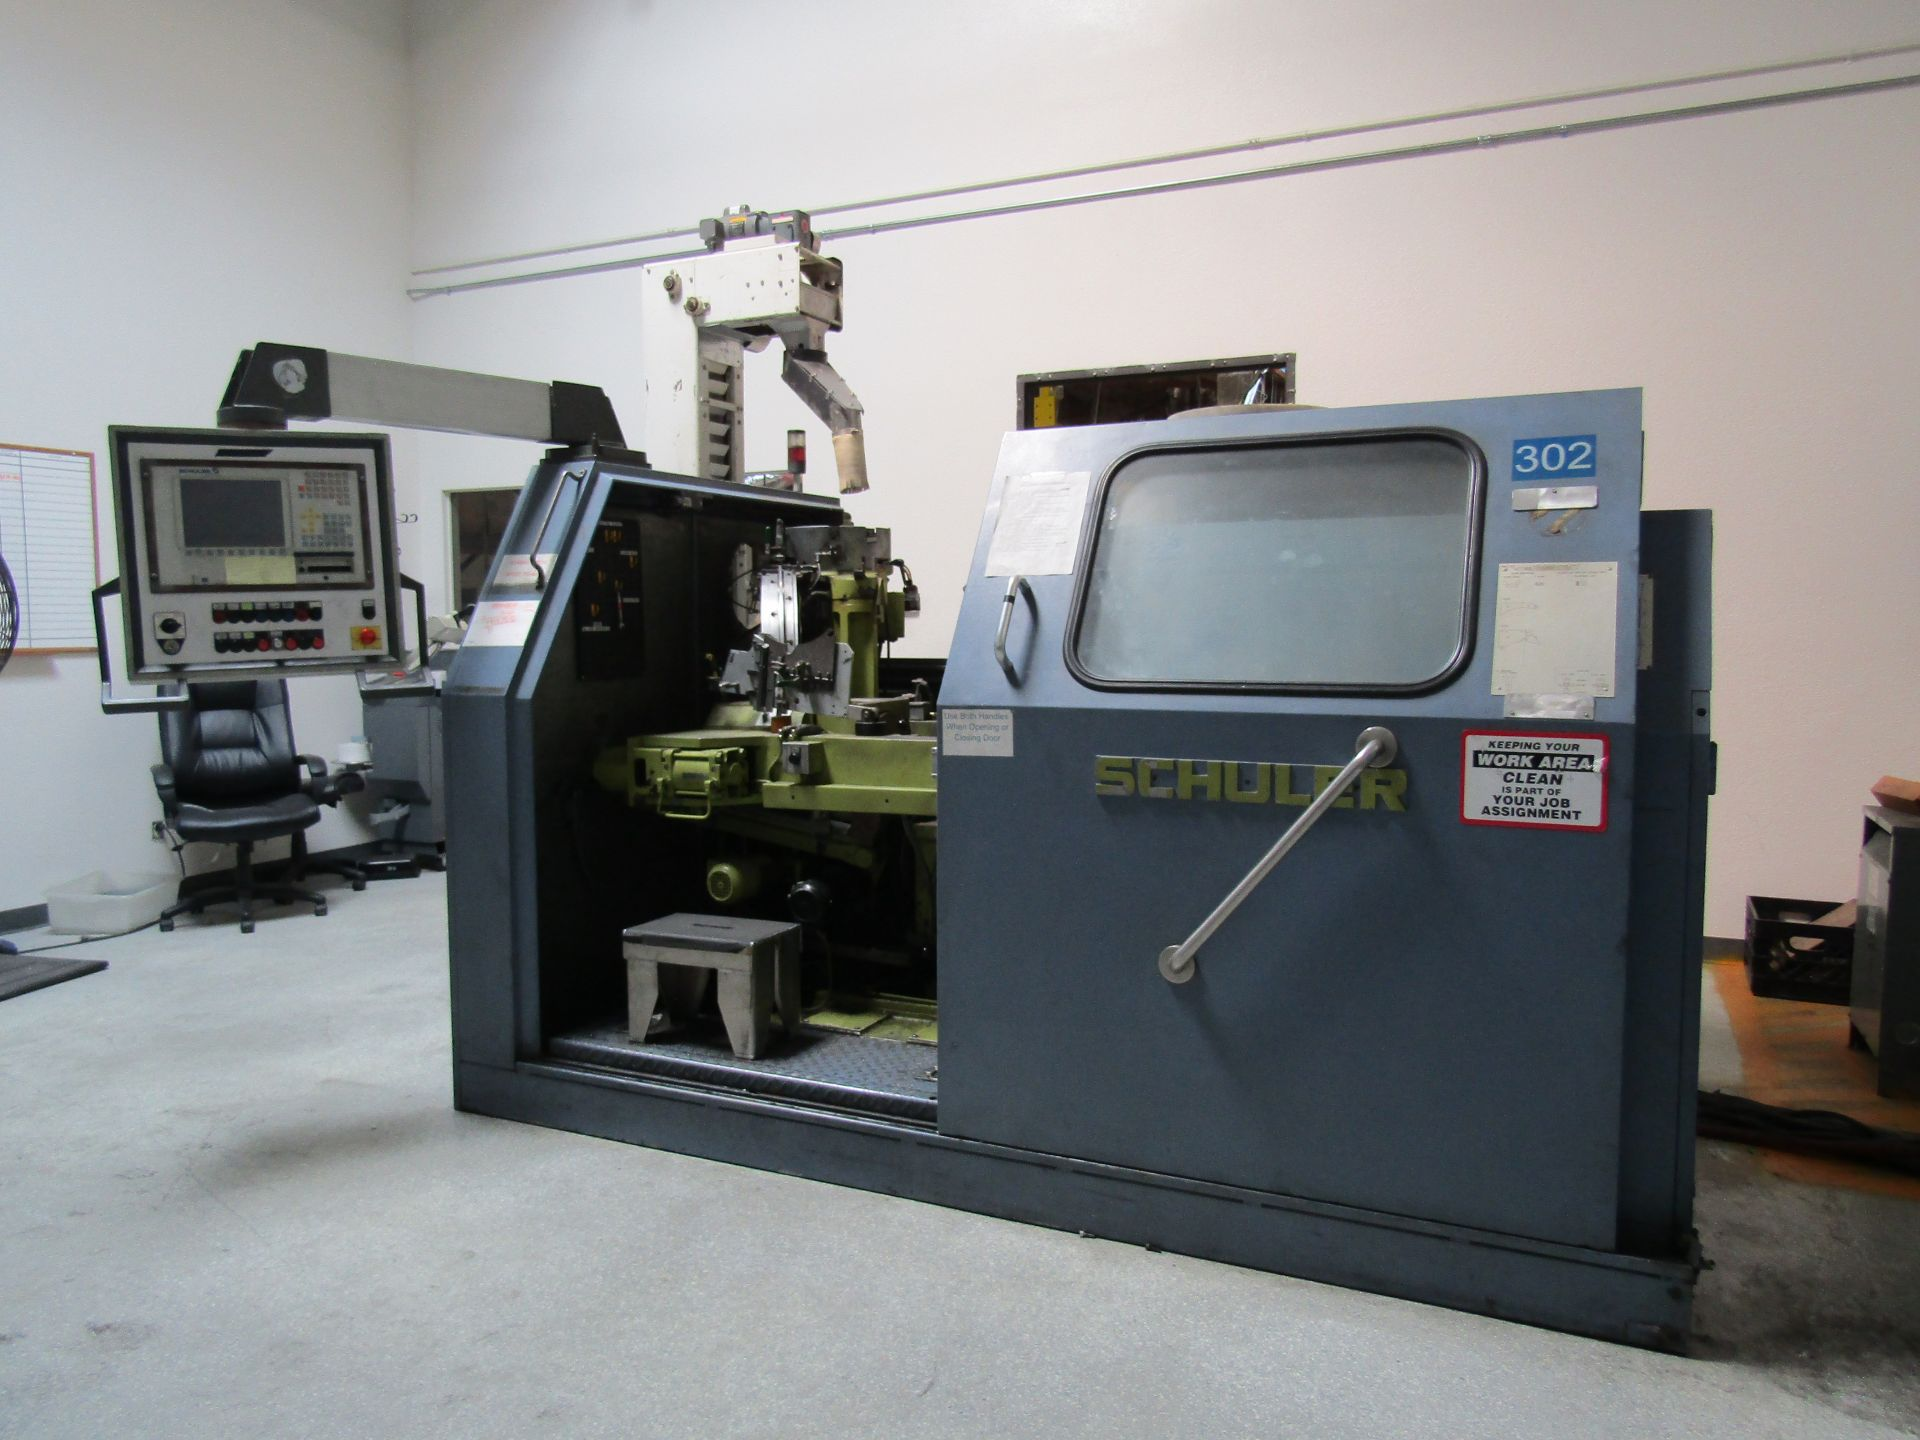 Lot 6 - 1997 SCHULER MRH150 Coining Press, S/N 97/20.2294, 460 V, 60 HZ, 3 PHASE, To Include Power Supply,